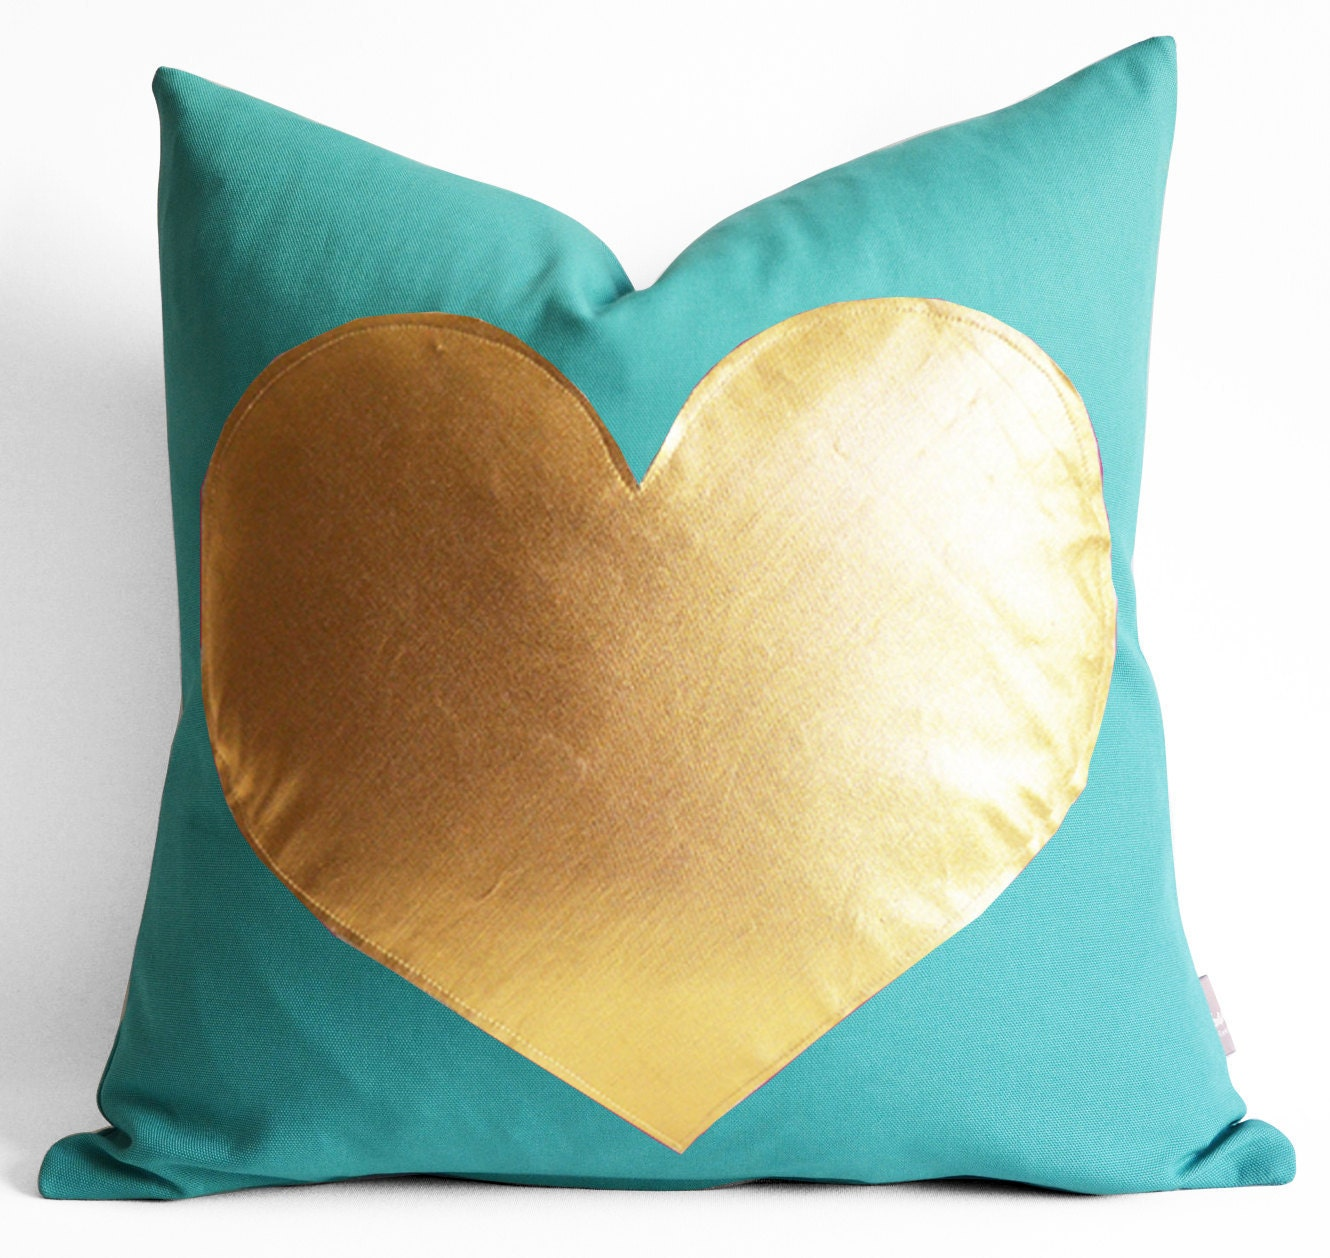 NEW Turquoise and SILVER Pillows Gold Foil Heart Pillow by sukan